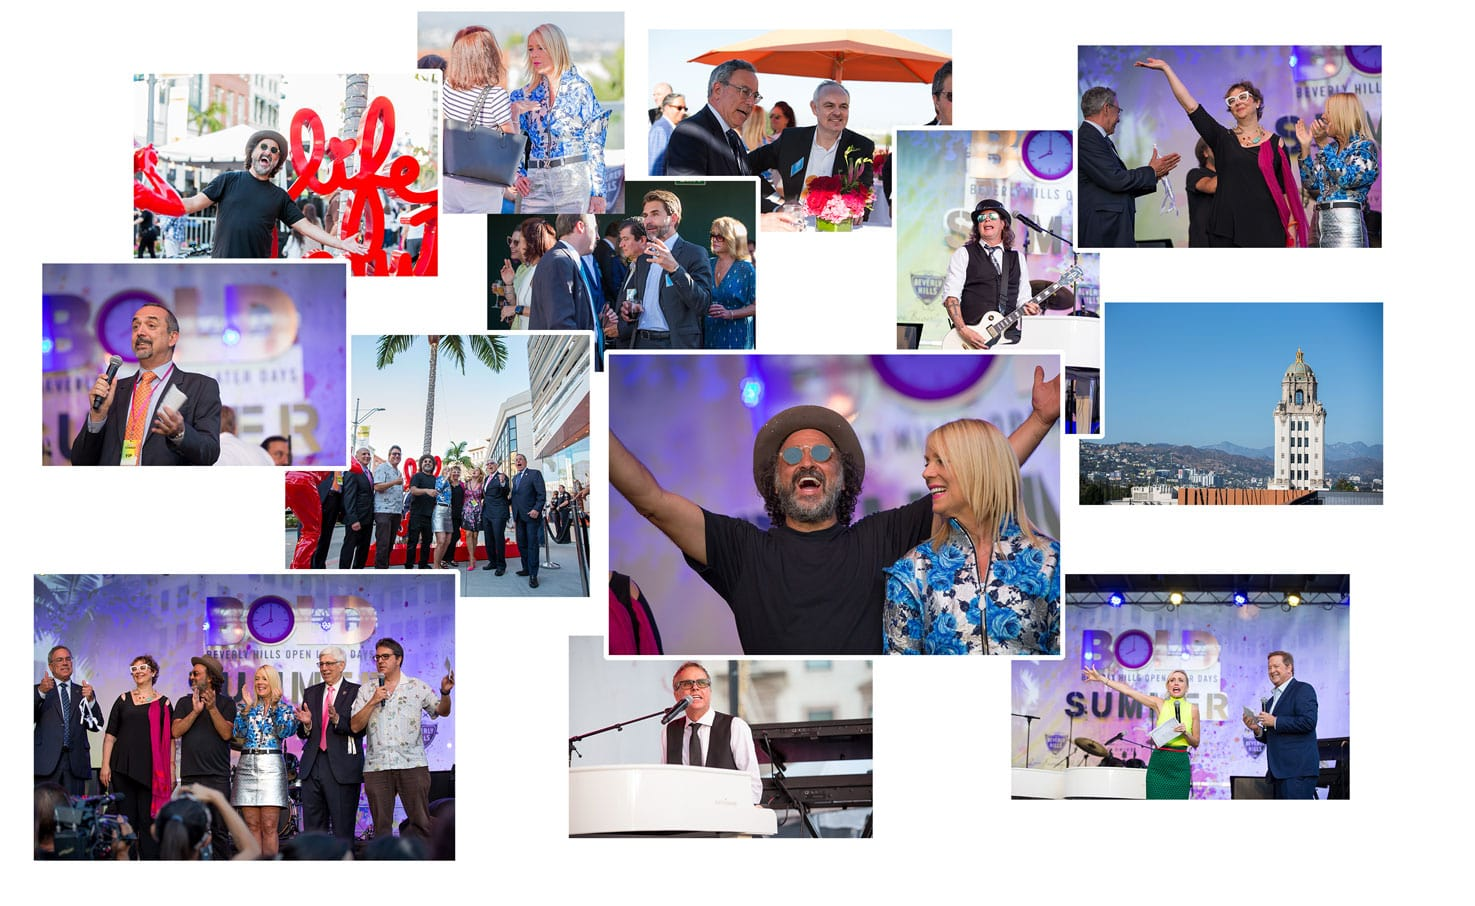 Collage of images of a tourism event